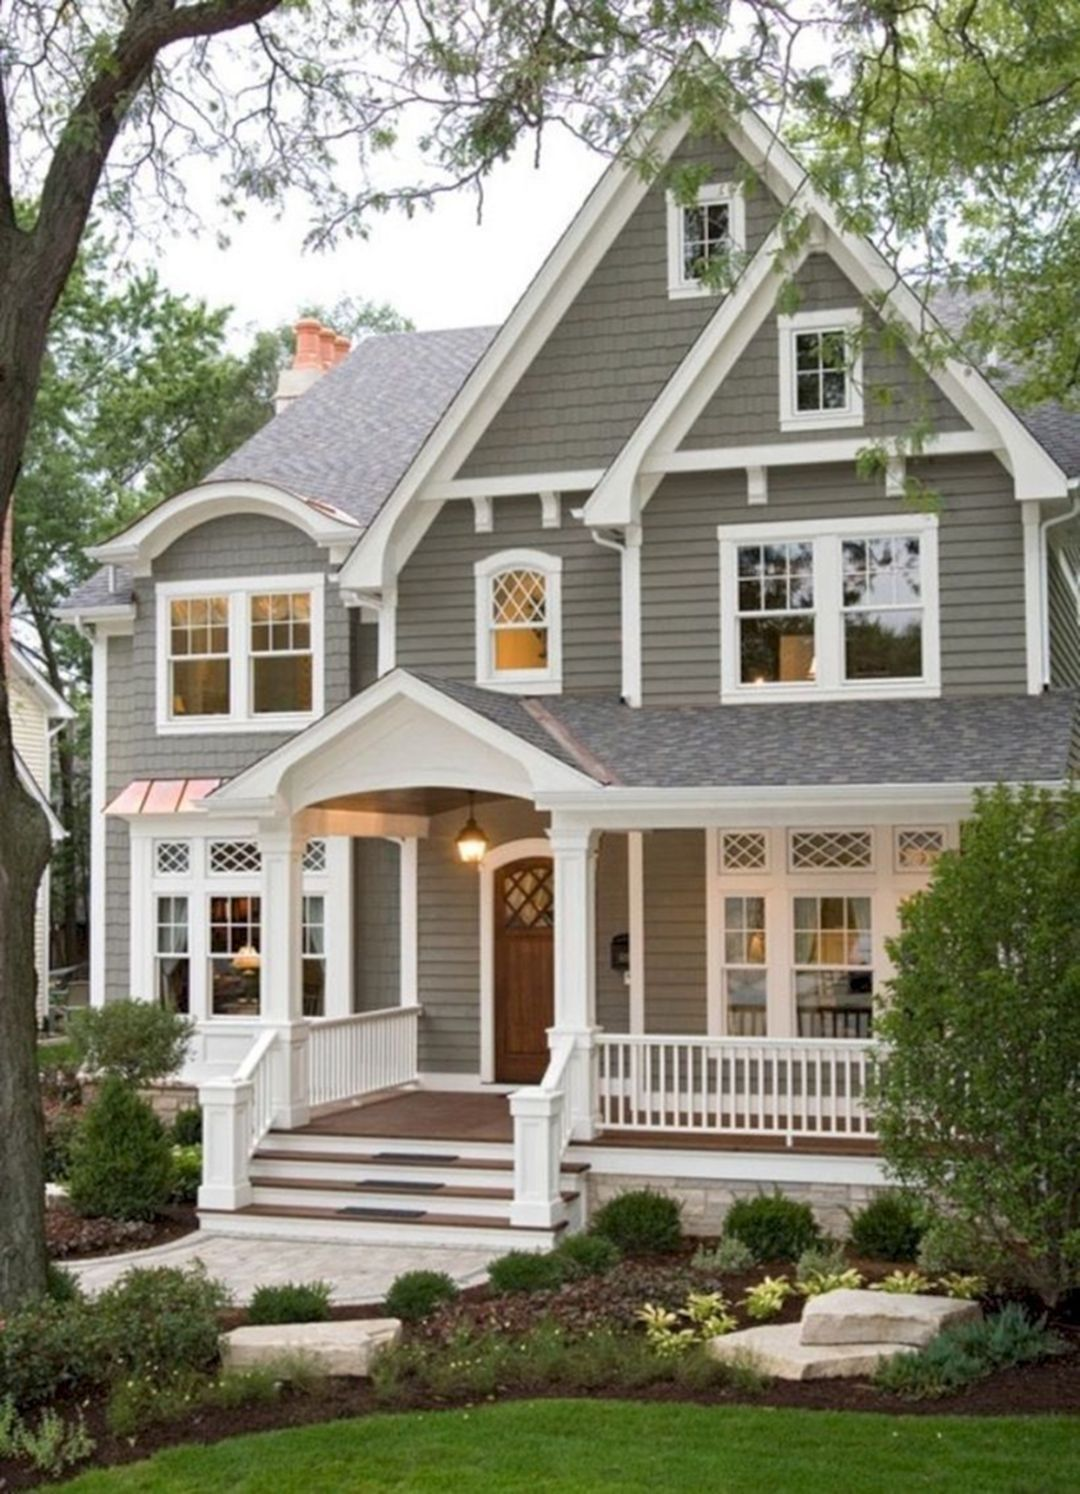 10 Best Exterior Paint Color Combinations And Types For Your Home Decor It S Best Exterior House Paint House Paint Exterior Exterior House Paint Color Combinations